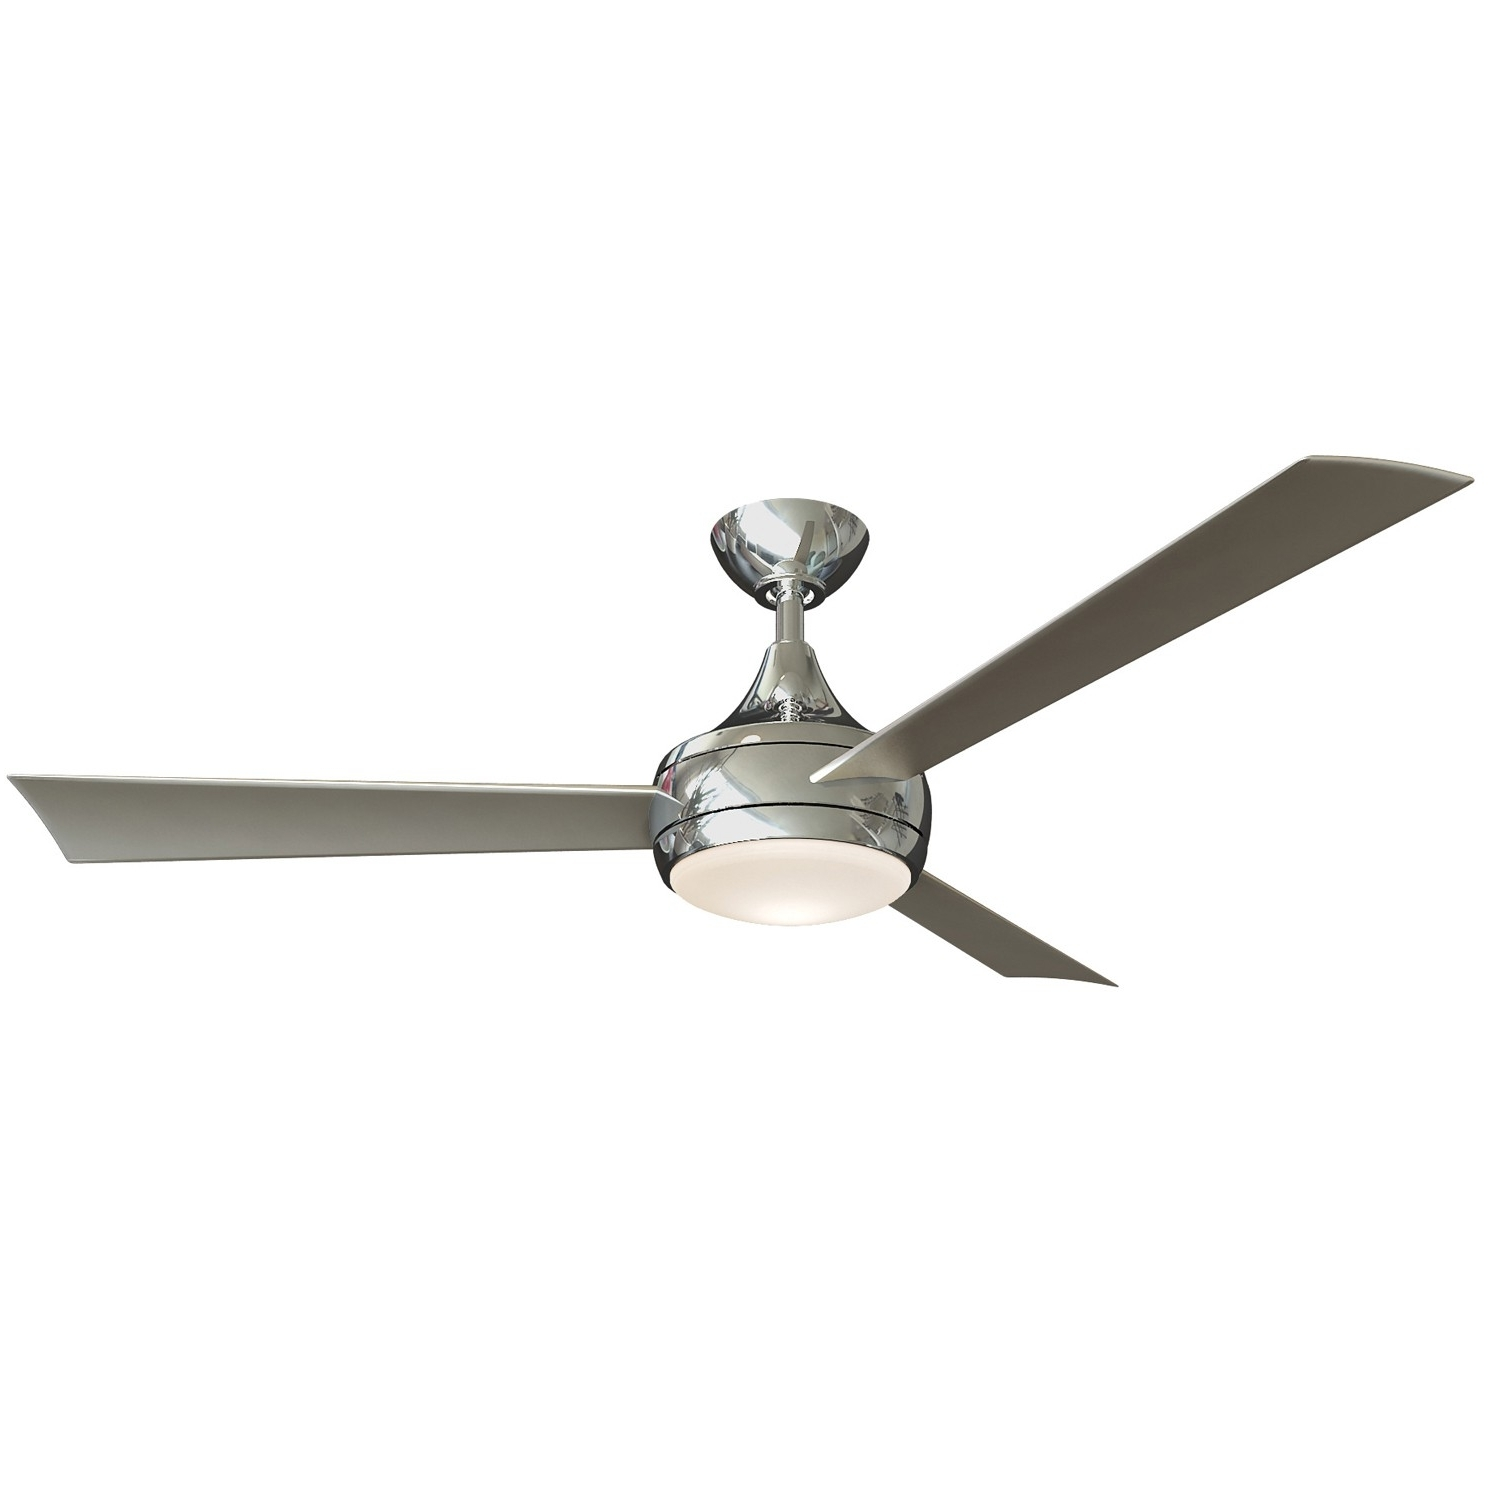 Stainless Steel Outdoor Ceiling Fans Pertaining To Best And Newest Stainless Steel Ceiling Fans Without Lights Cute Outdoor Ceiling Fan (View 13 of 20)